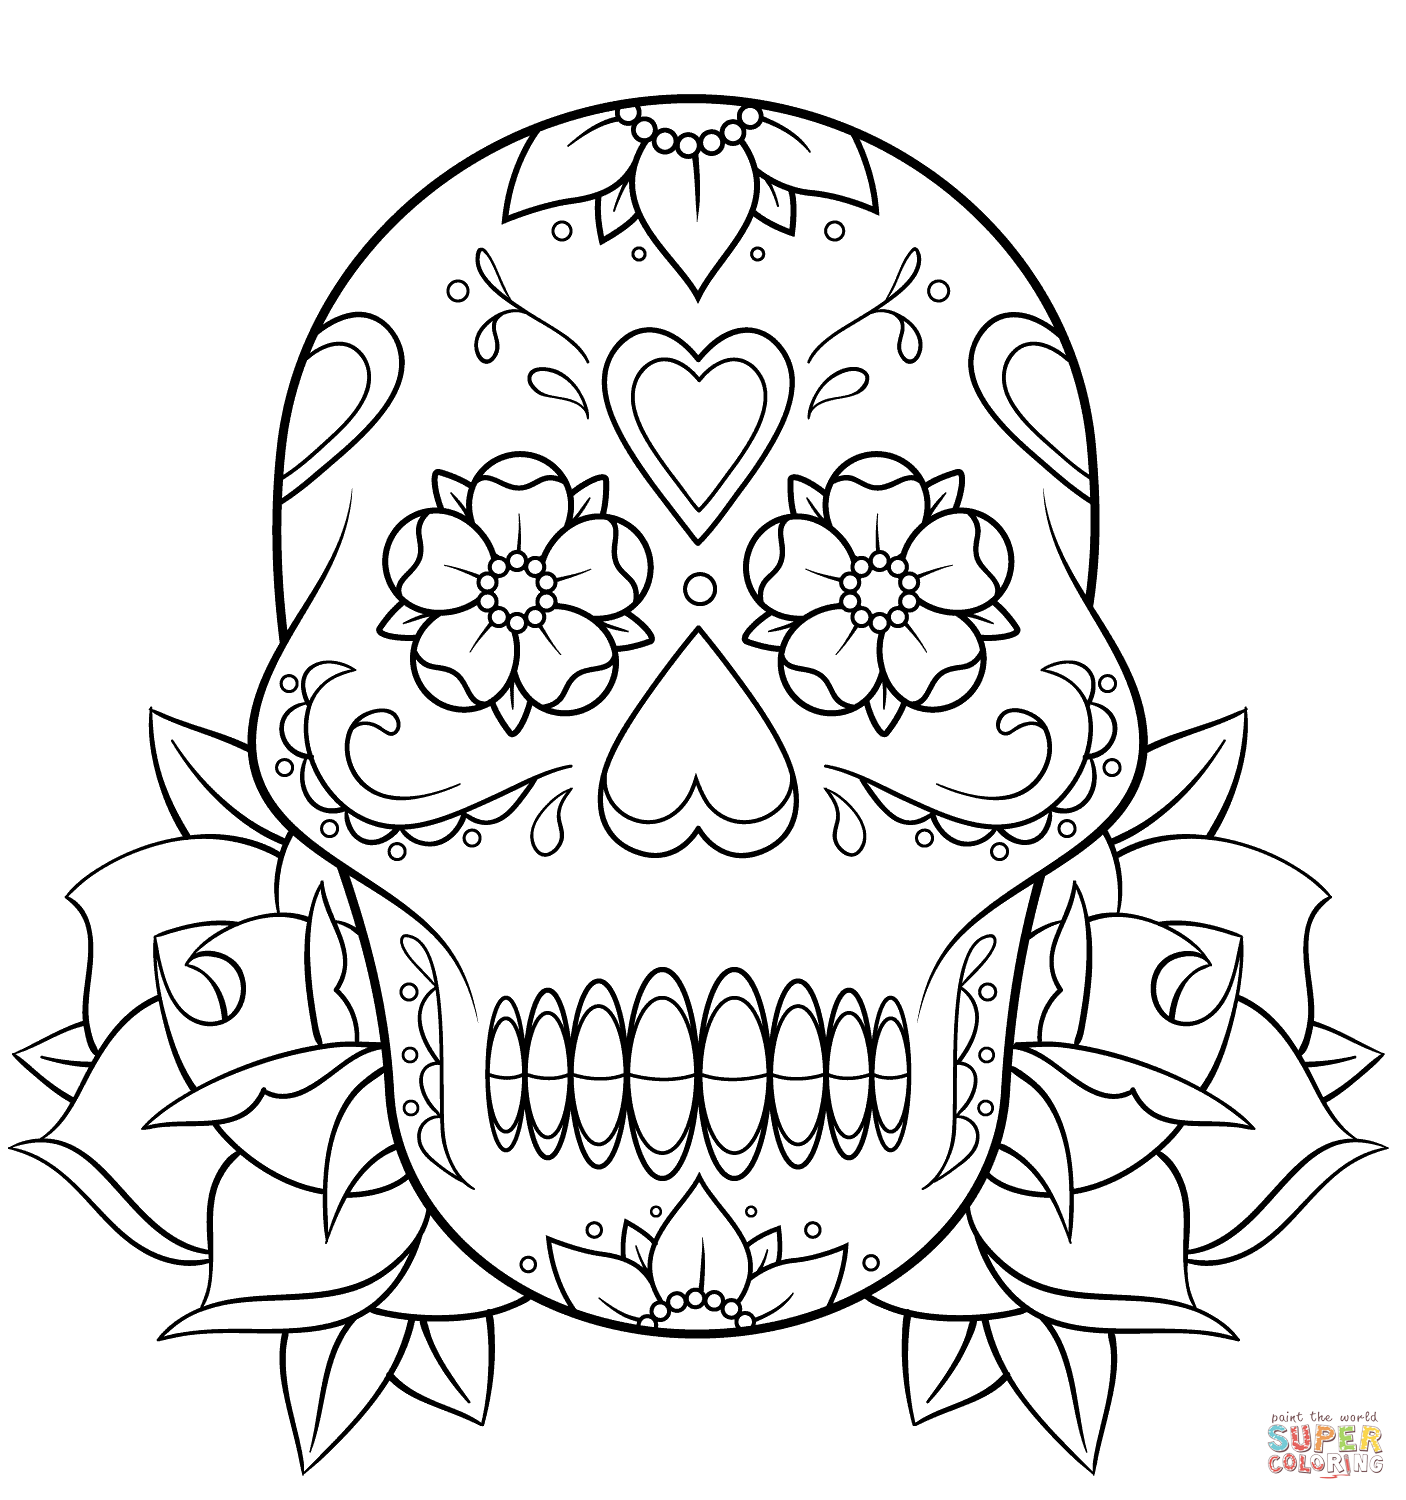 coloring sheet guns and roses coloring pages how to draw a m4a1 step by viewing gallery bmw m4 guns pages coloring coloring roses sheet and